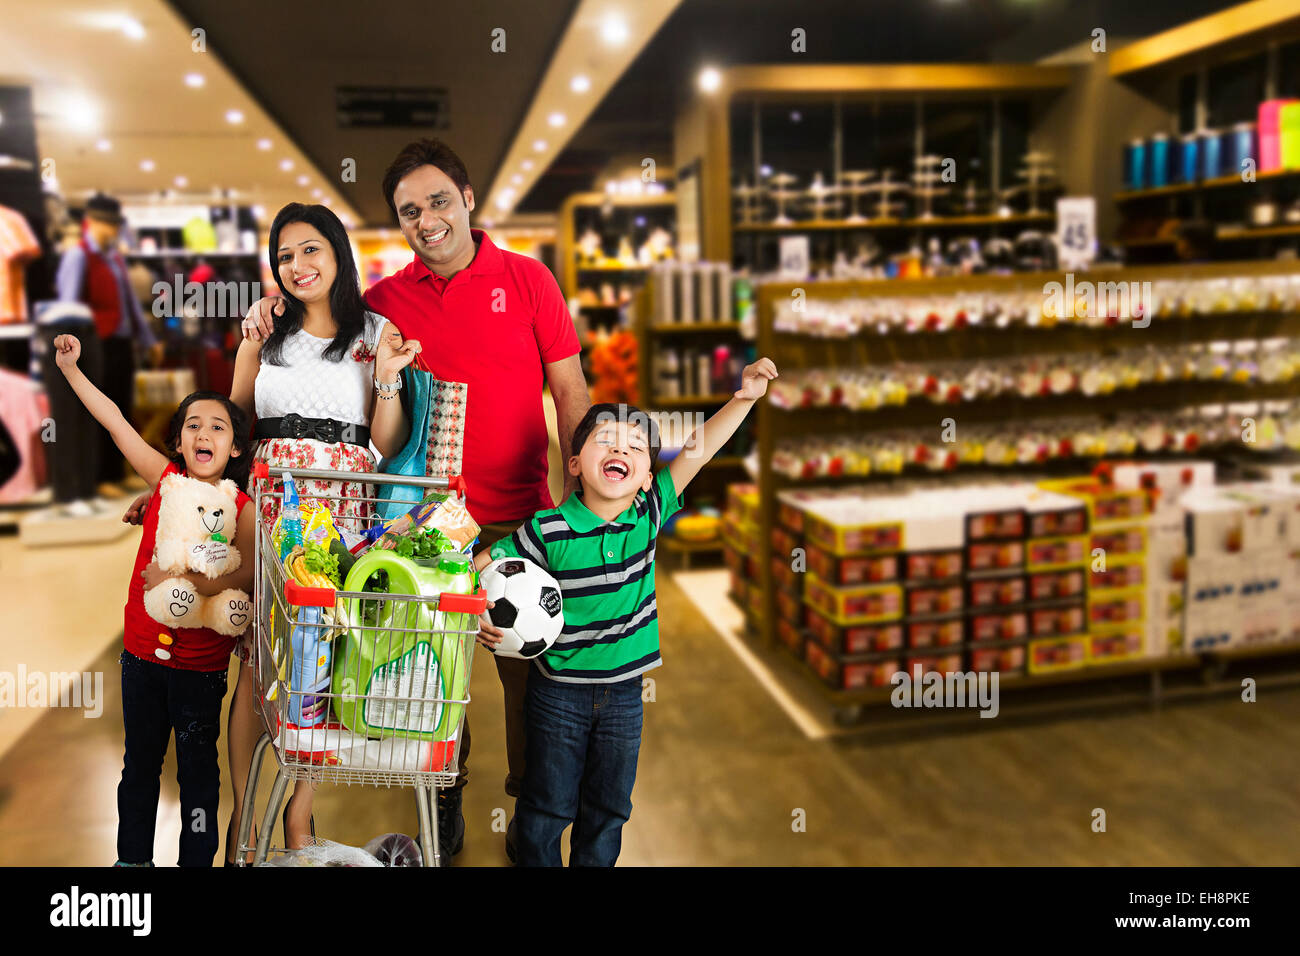 4 indian kids and Parents mall Trolley Shopping shouting - Stock Image